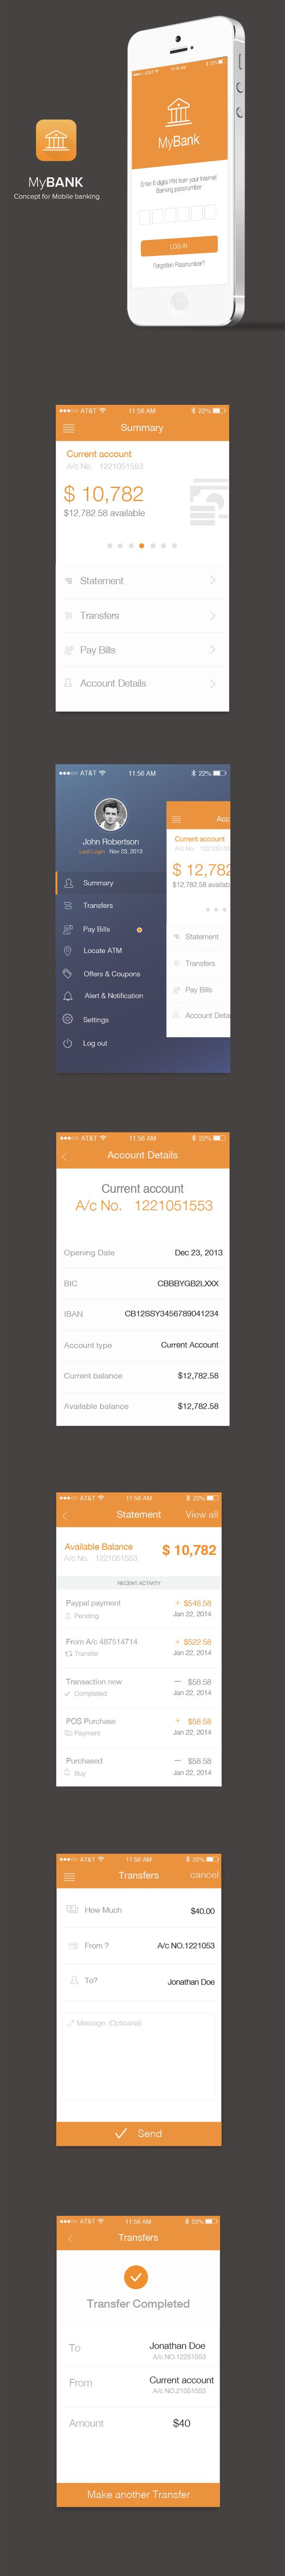 Sign up : Mobile UI, Bank App